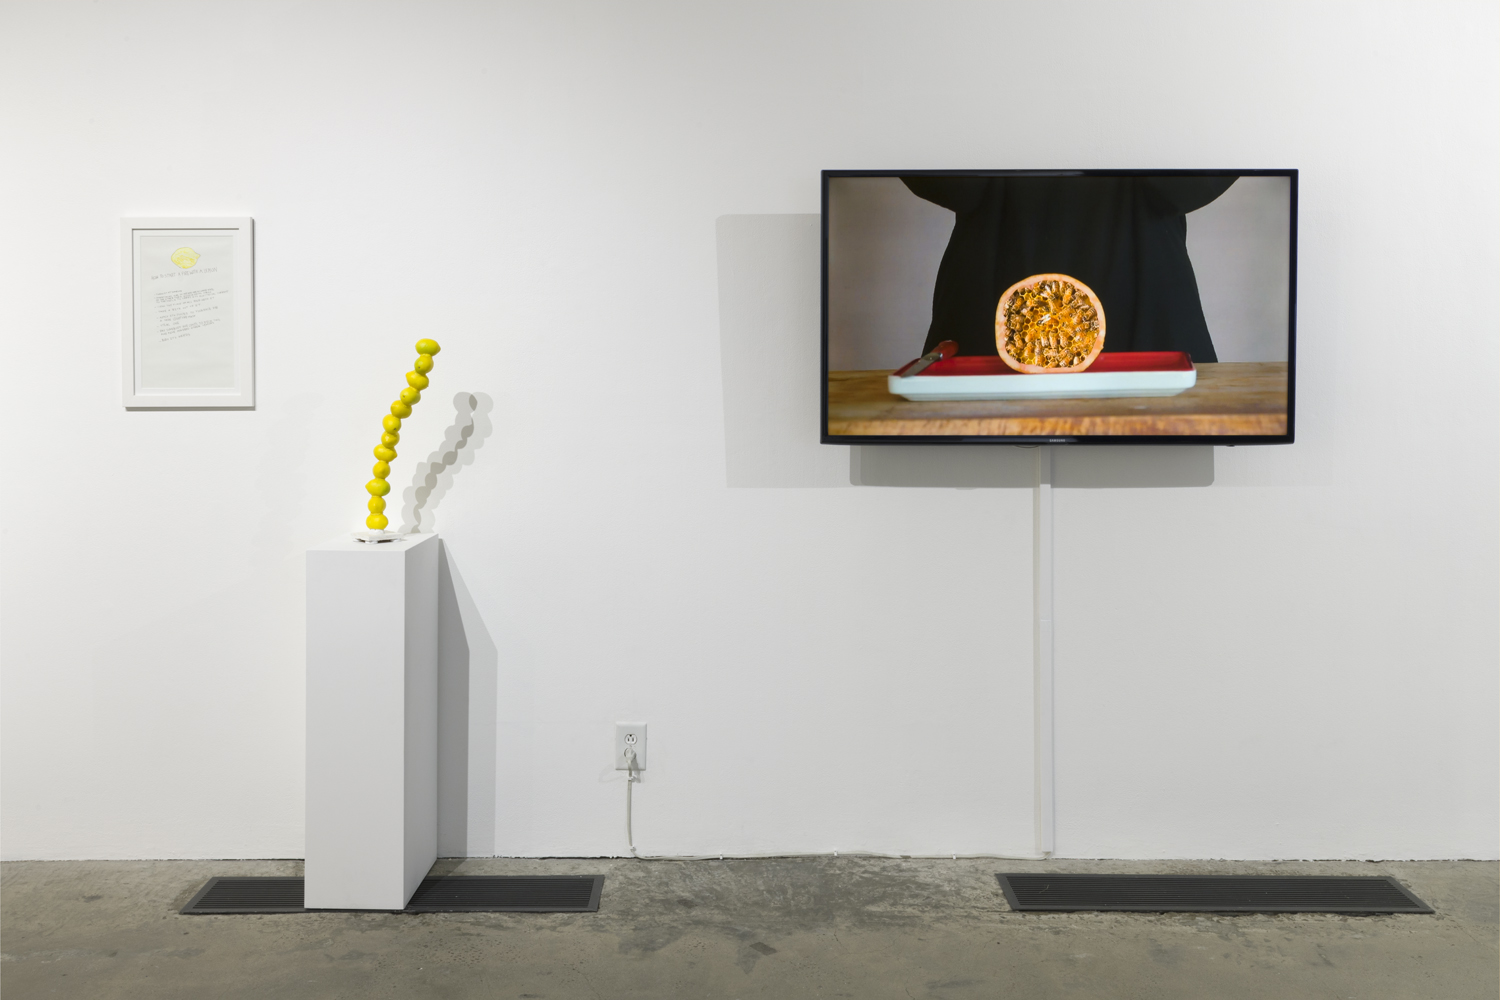 The artwork installation by the artist gloria galvez includes a print artwork hanging on the wall, a sculpture piece placed on a pedestal, and a video displayed on a mounted television monitor. The print artwork hanging on the wall includes indecipherable black text with a small yellow drawing. The sculpture is on a pedestal is to the right of this print. The sculpture is of a stack of twelve, small objects that look like lemons; this stack is slightly leaning to the right. To the right of this artwork is the video displayed on a mounted television monitor. The video still shows a figure clothed in black with a split open pomegranate on a white plate in front of them on a table.